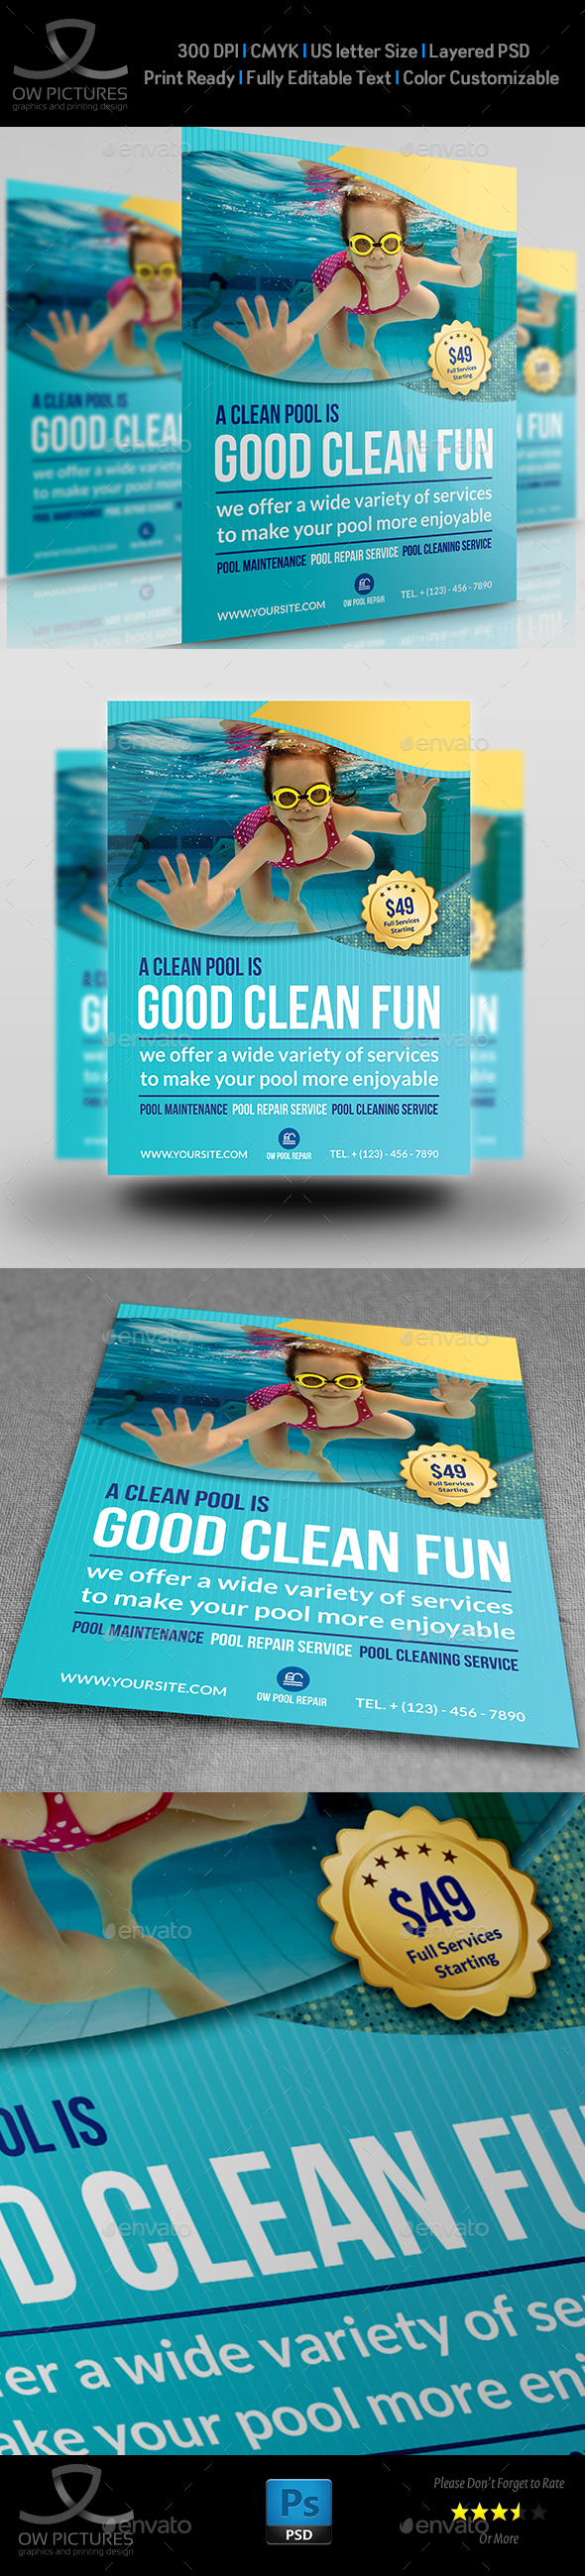 swimming pool cleaning service flyer template flyer template swimming pool cleaning service flyer template